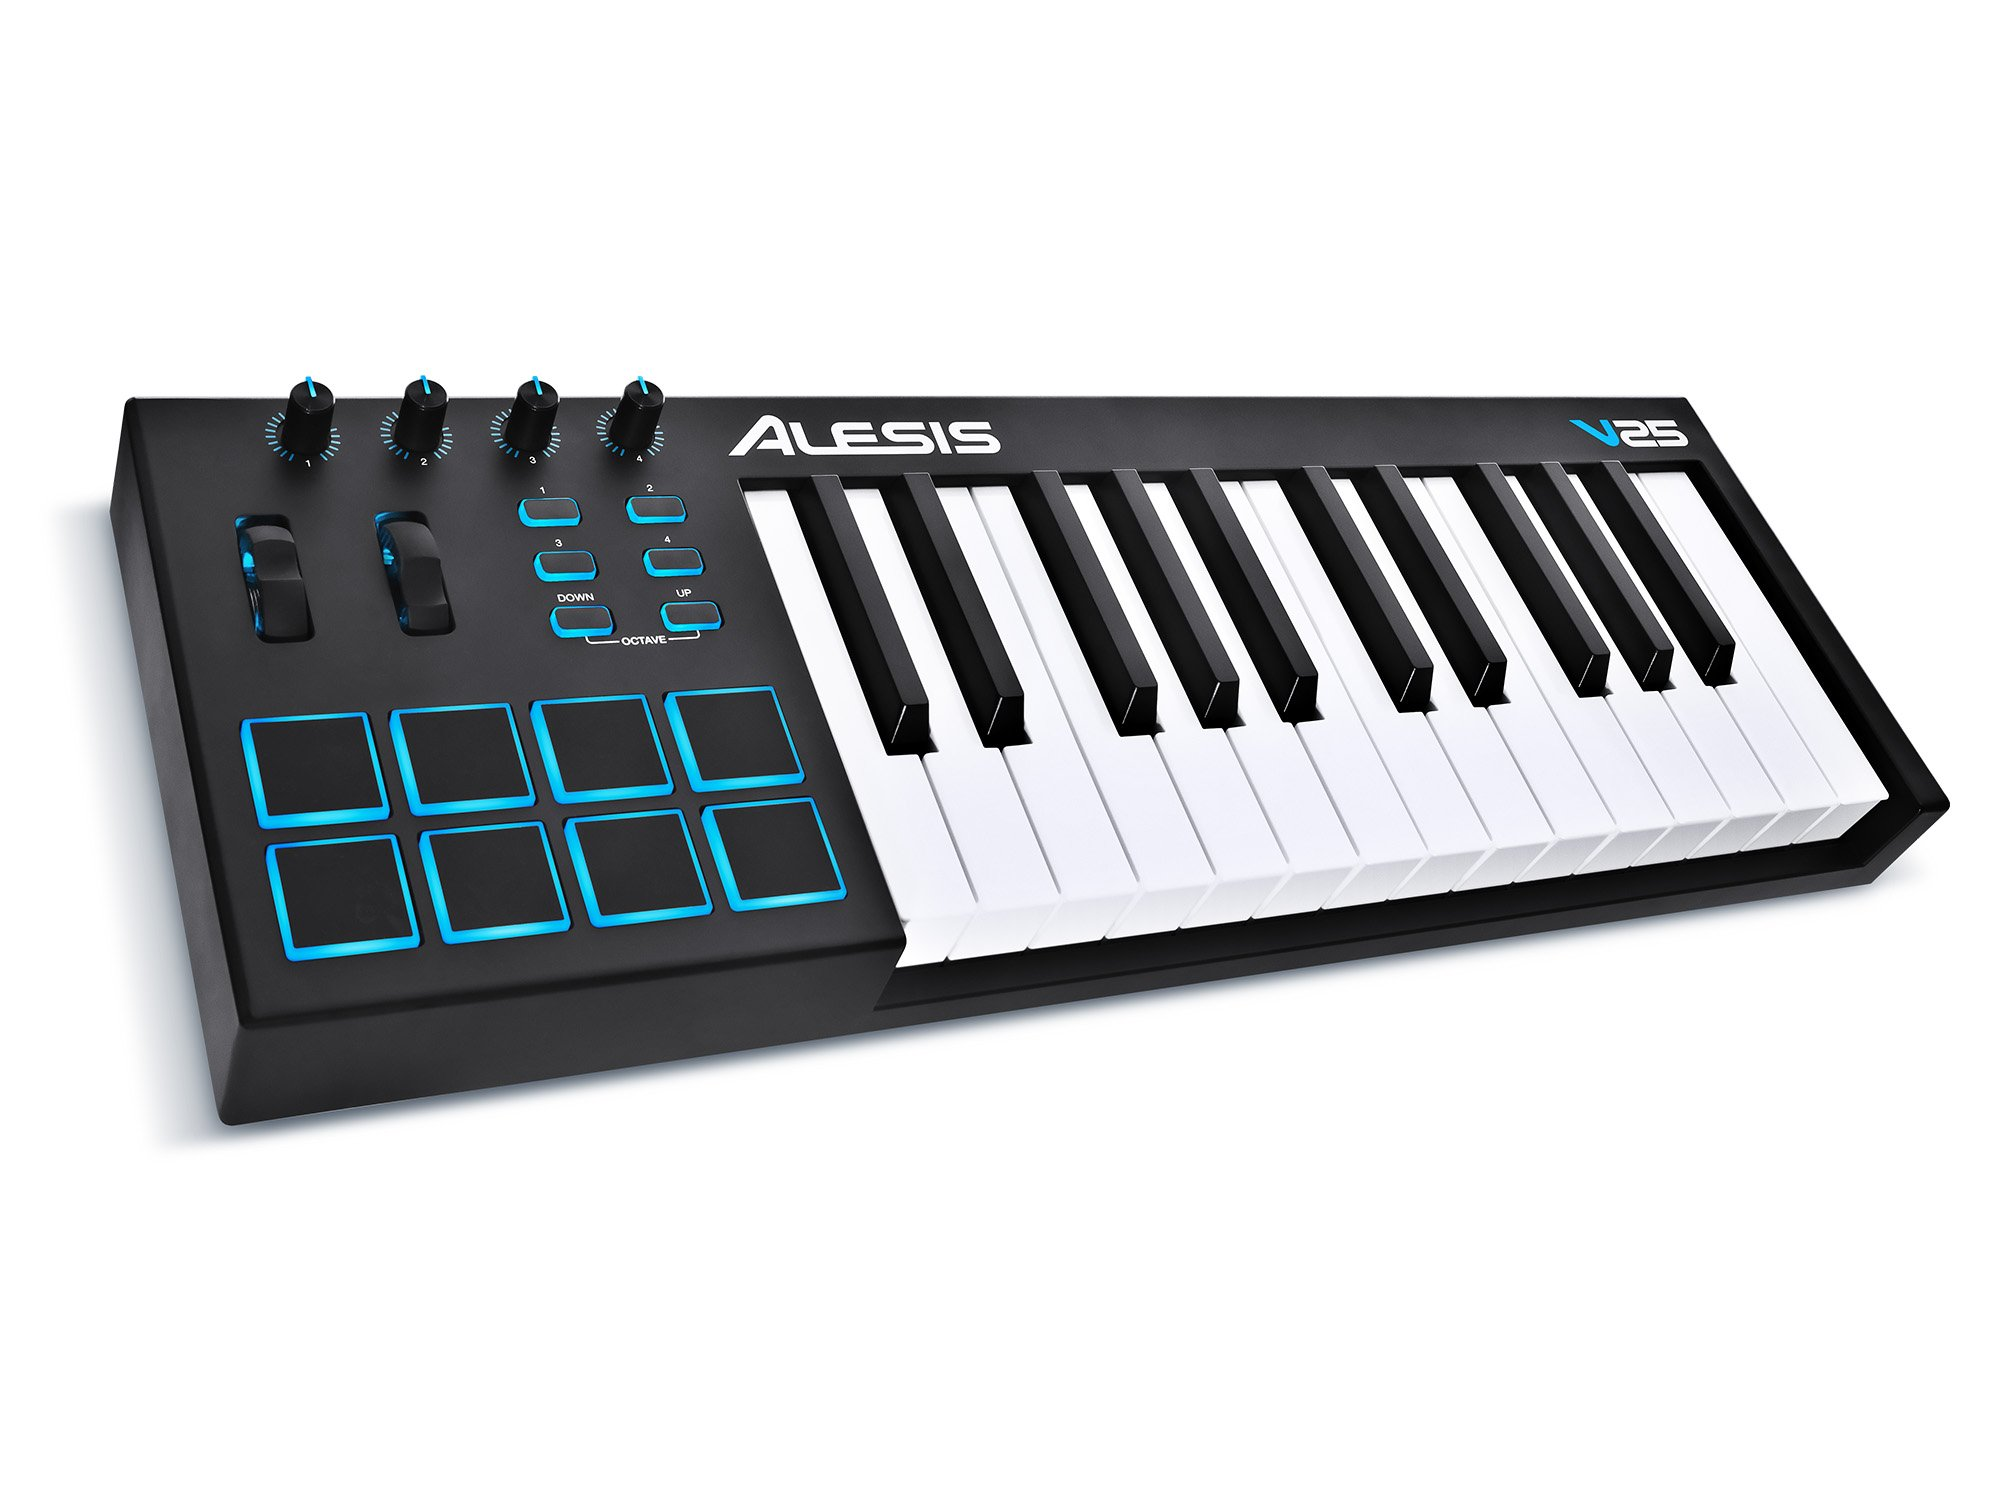 Alesis V25 | 25-Key USB MIDI Keyboard Controller with Backlit Pads, 4 Assignable Knobs and Buttons, Plus a Professional Software Suite with ProTools | First Included